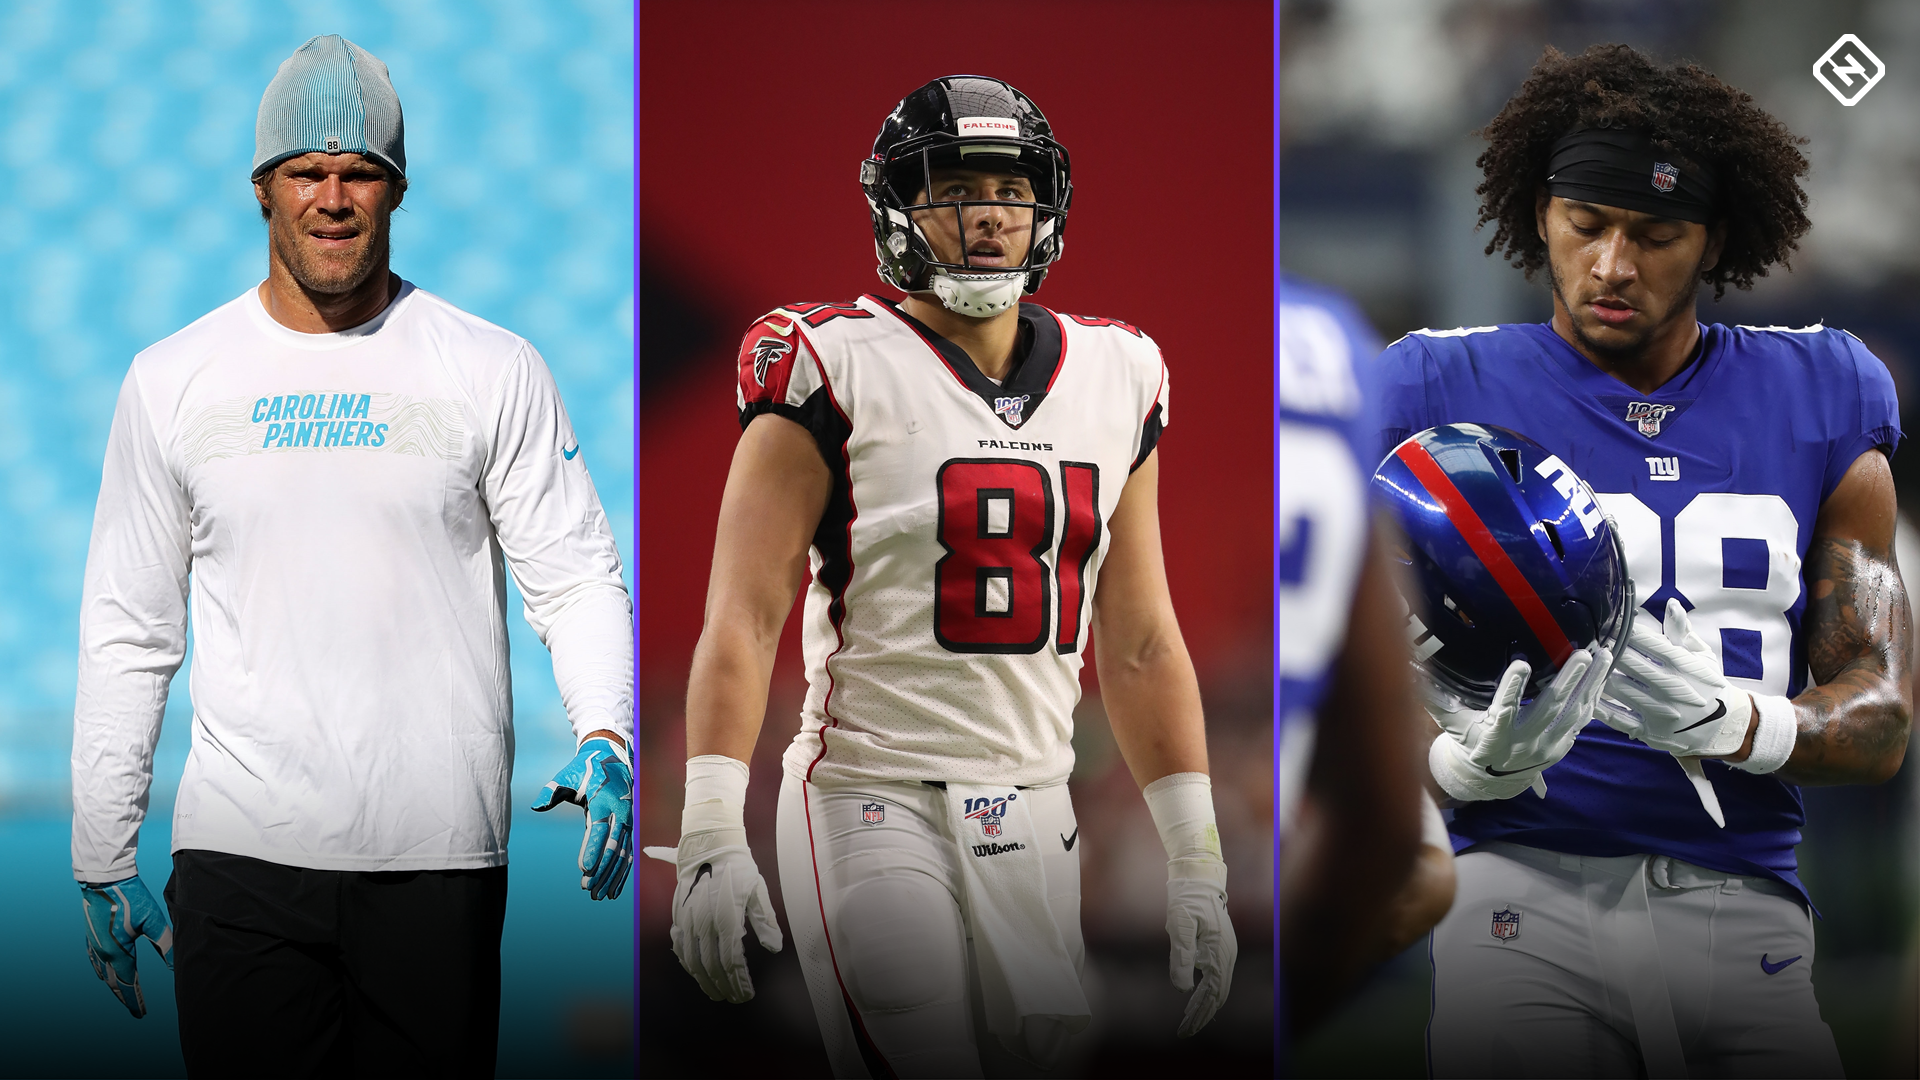 Fantasy Injury Updates: Greg Olsen, Austin Hooper, Evan Engram, more TEs affect Week 14 start 'em, sit 'em calls